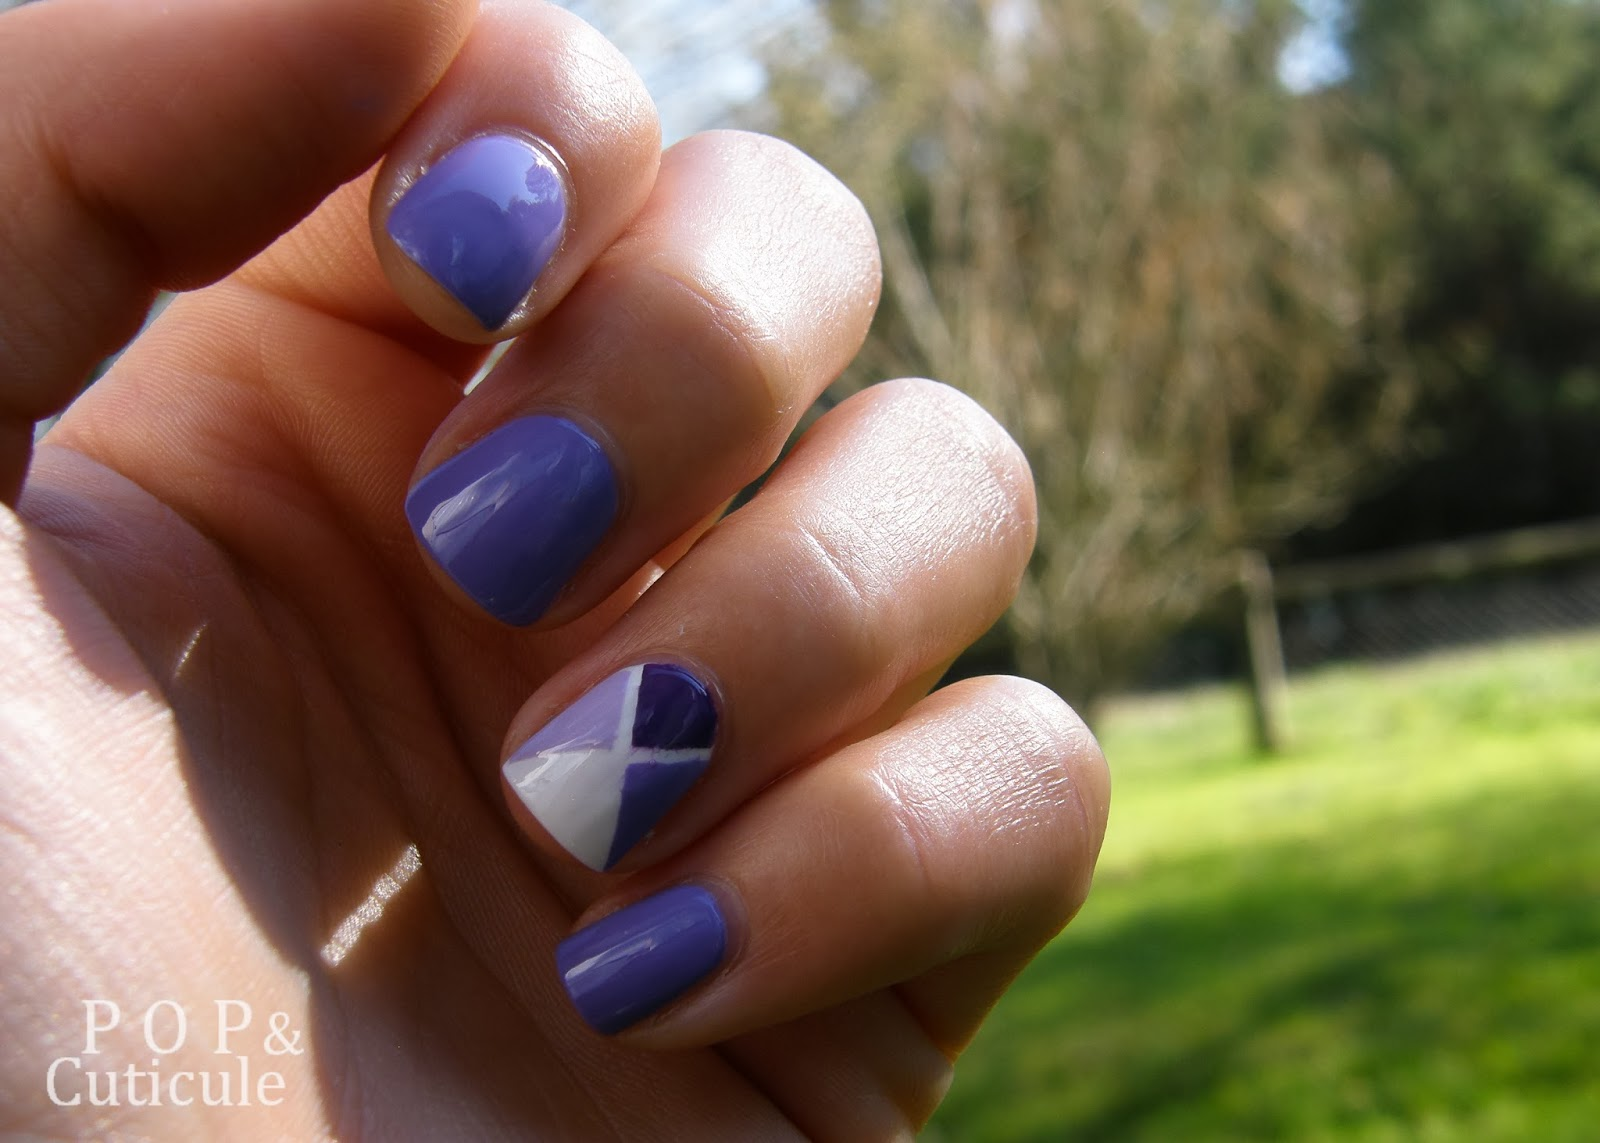 Pop & Cuticule, Striping Tape Tuto, Lavande Esquisse Bourjois